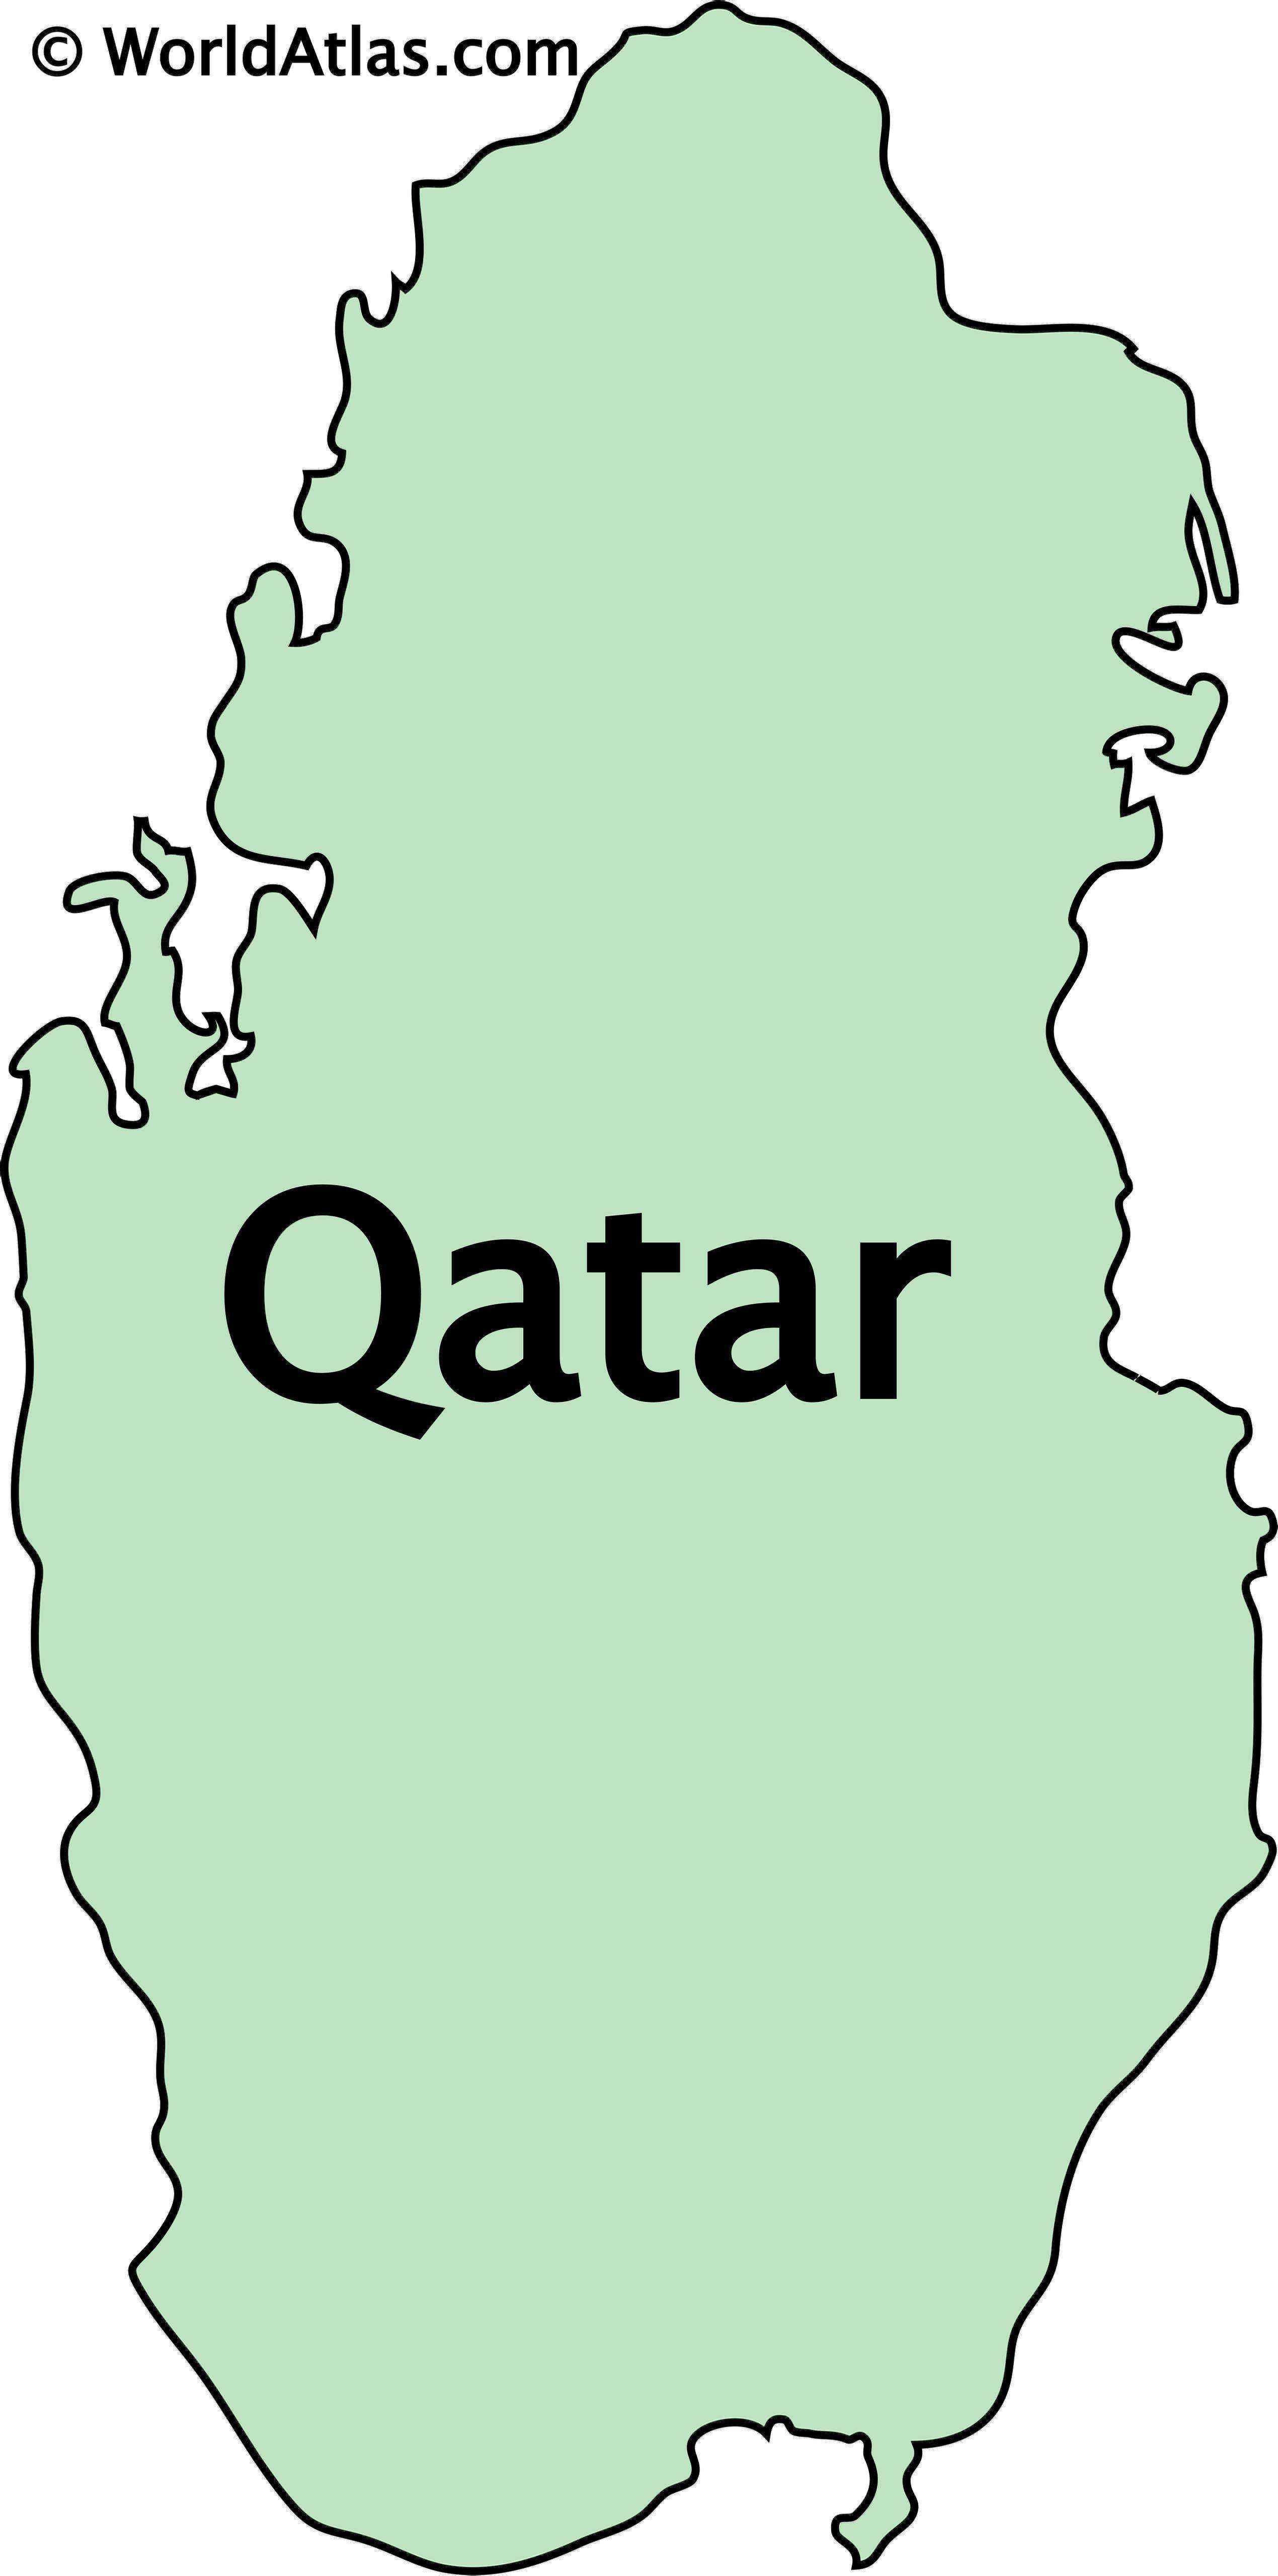 Outline Map of Qatar